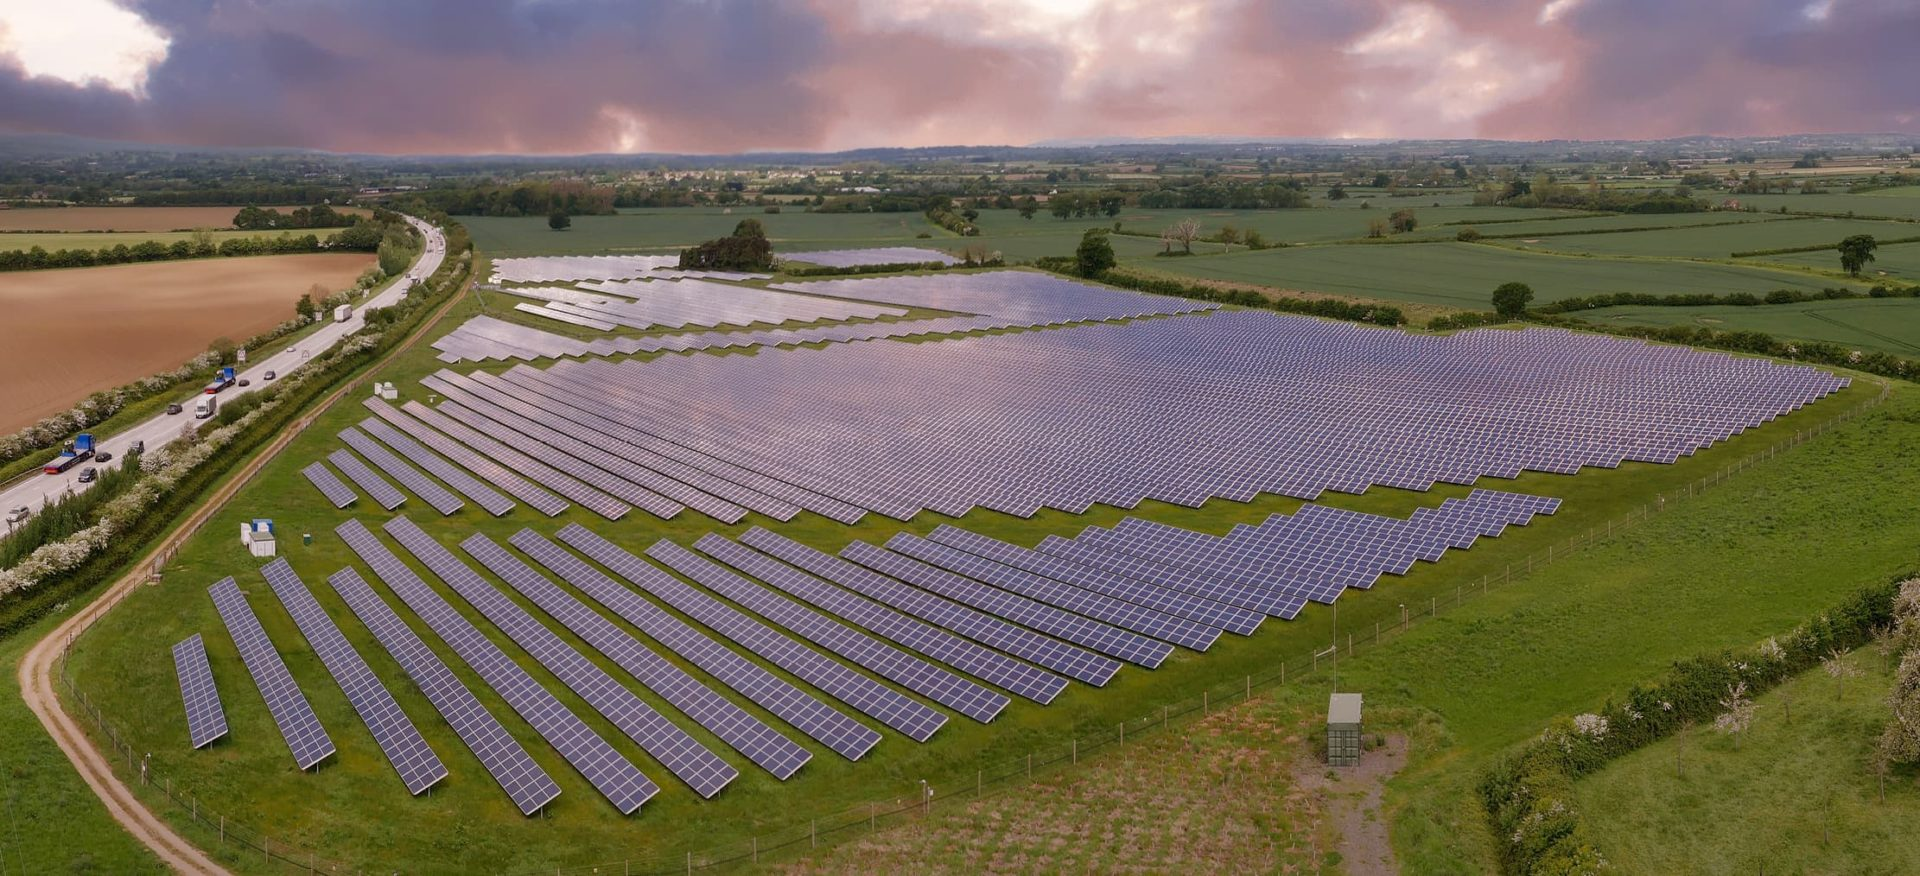 Der Solarpark Dillington Estate in Hurcott, United Kingdom